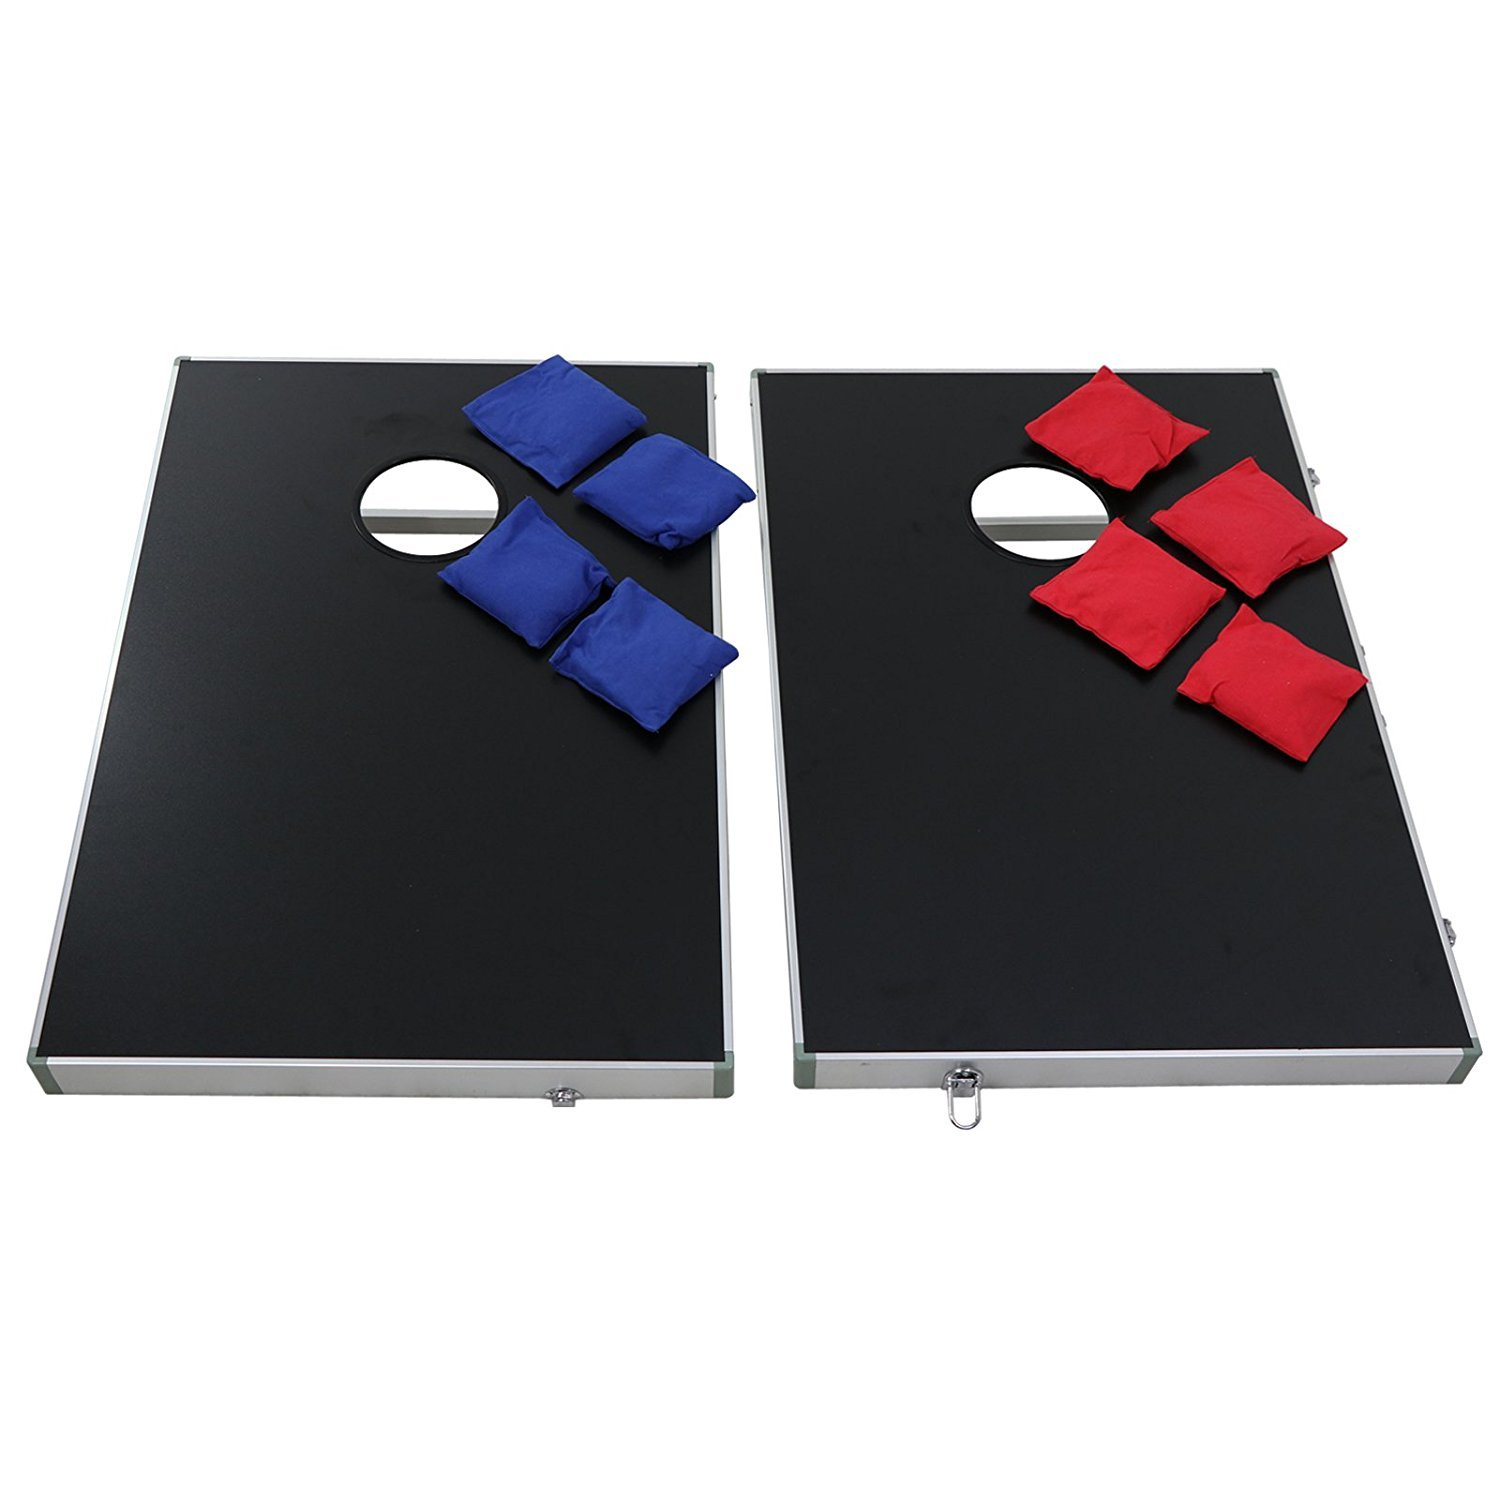 ZENY 3' x 2' Cornhole Bean Bag Toss Game Set with Carrying Case Aluminum Lightweight Corn Hole Board by ZENY (Image #2)